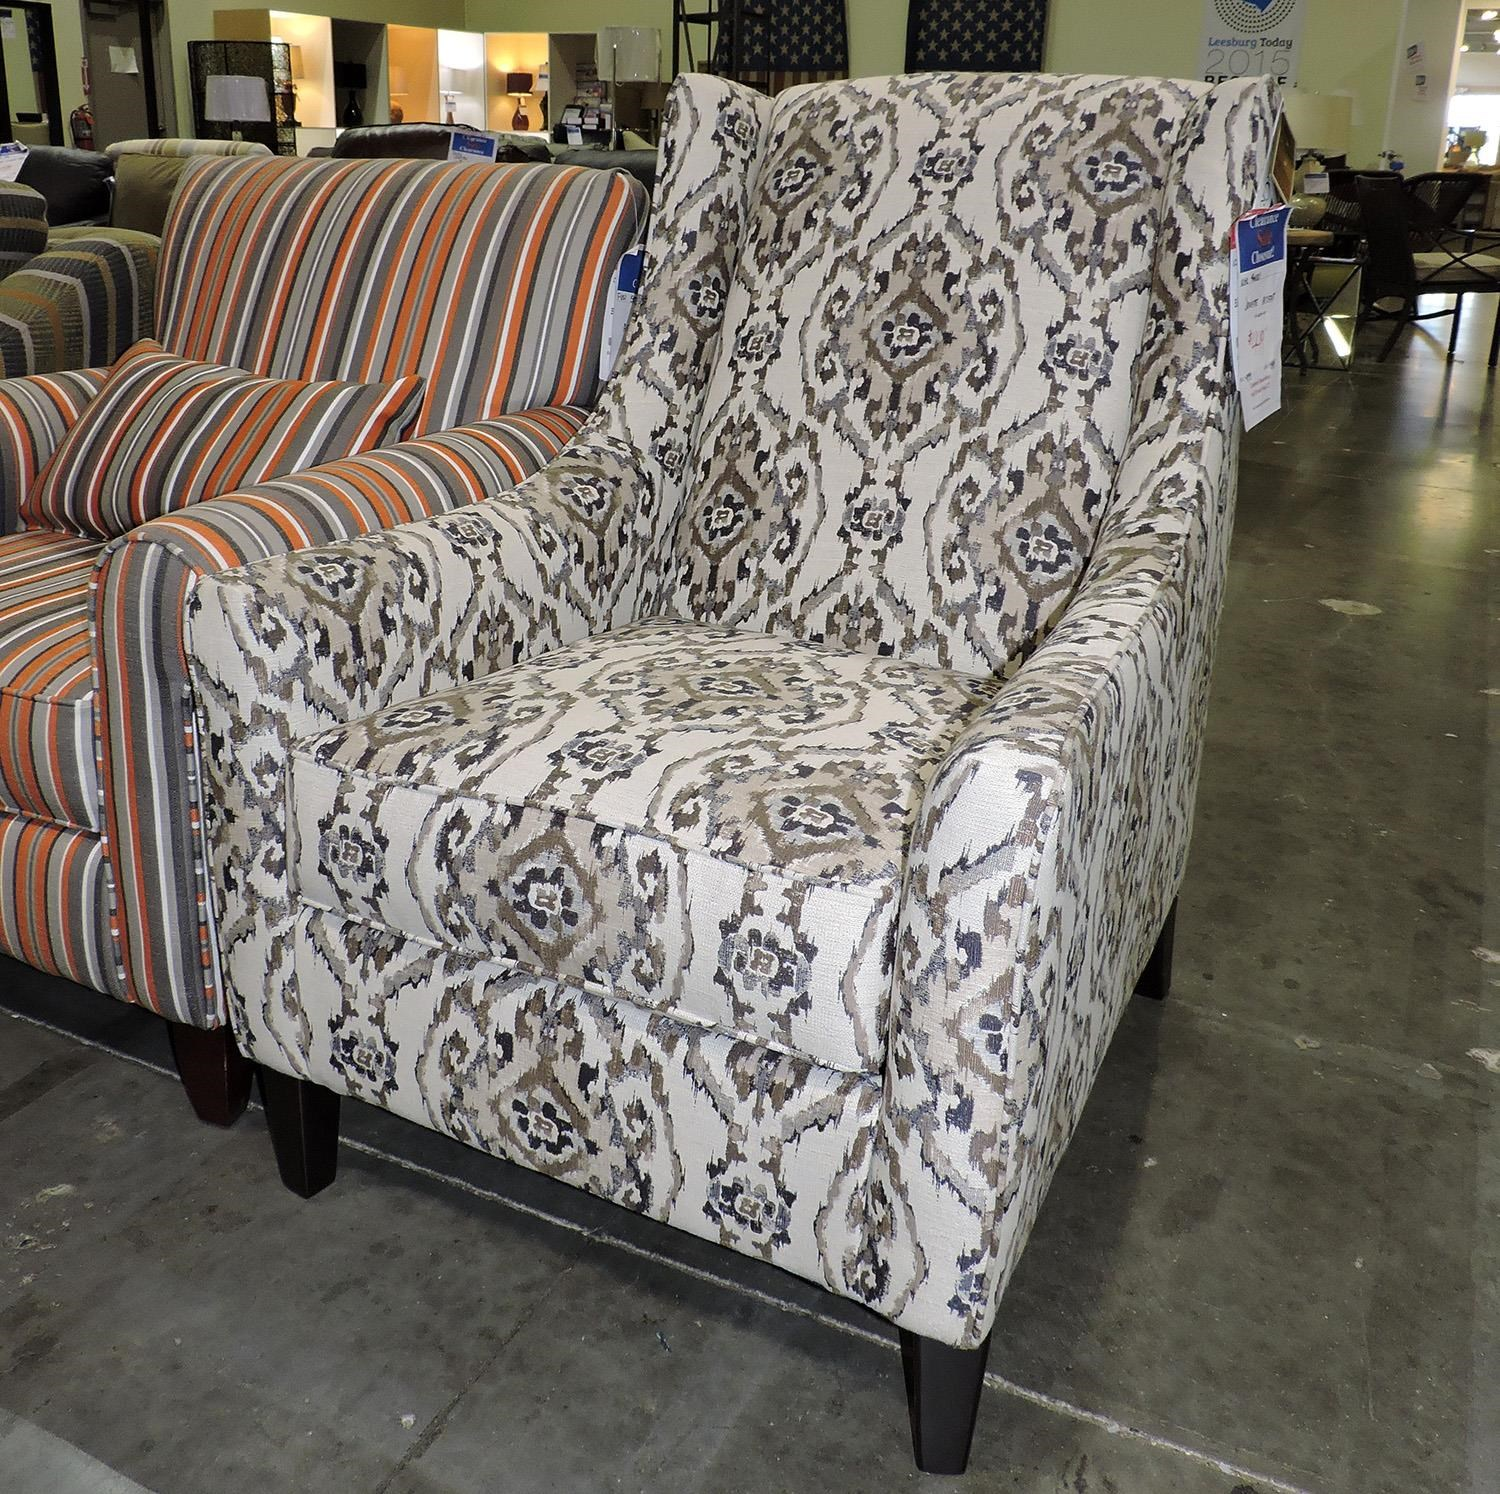 Ashley Furniture         Jonette Accent Chair - Item Number: 945527320